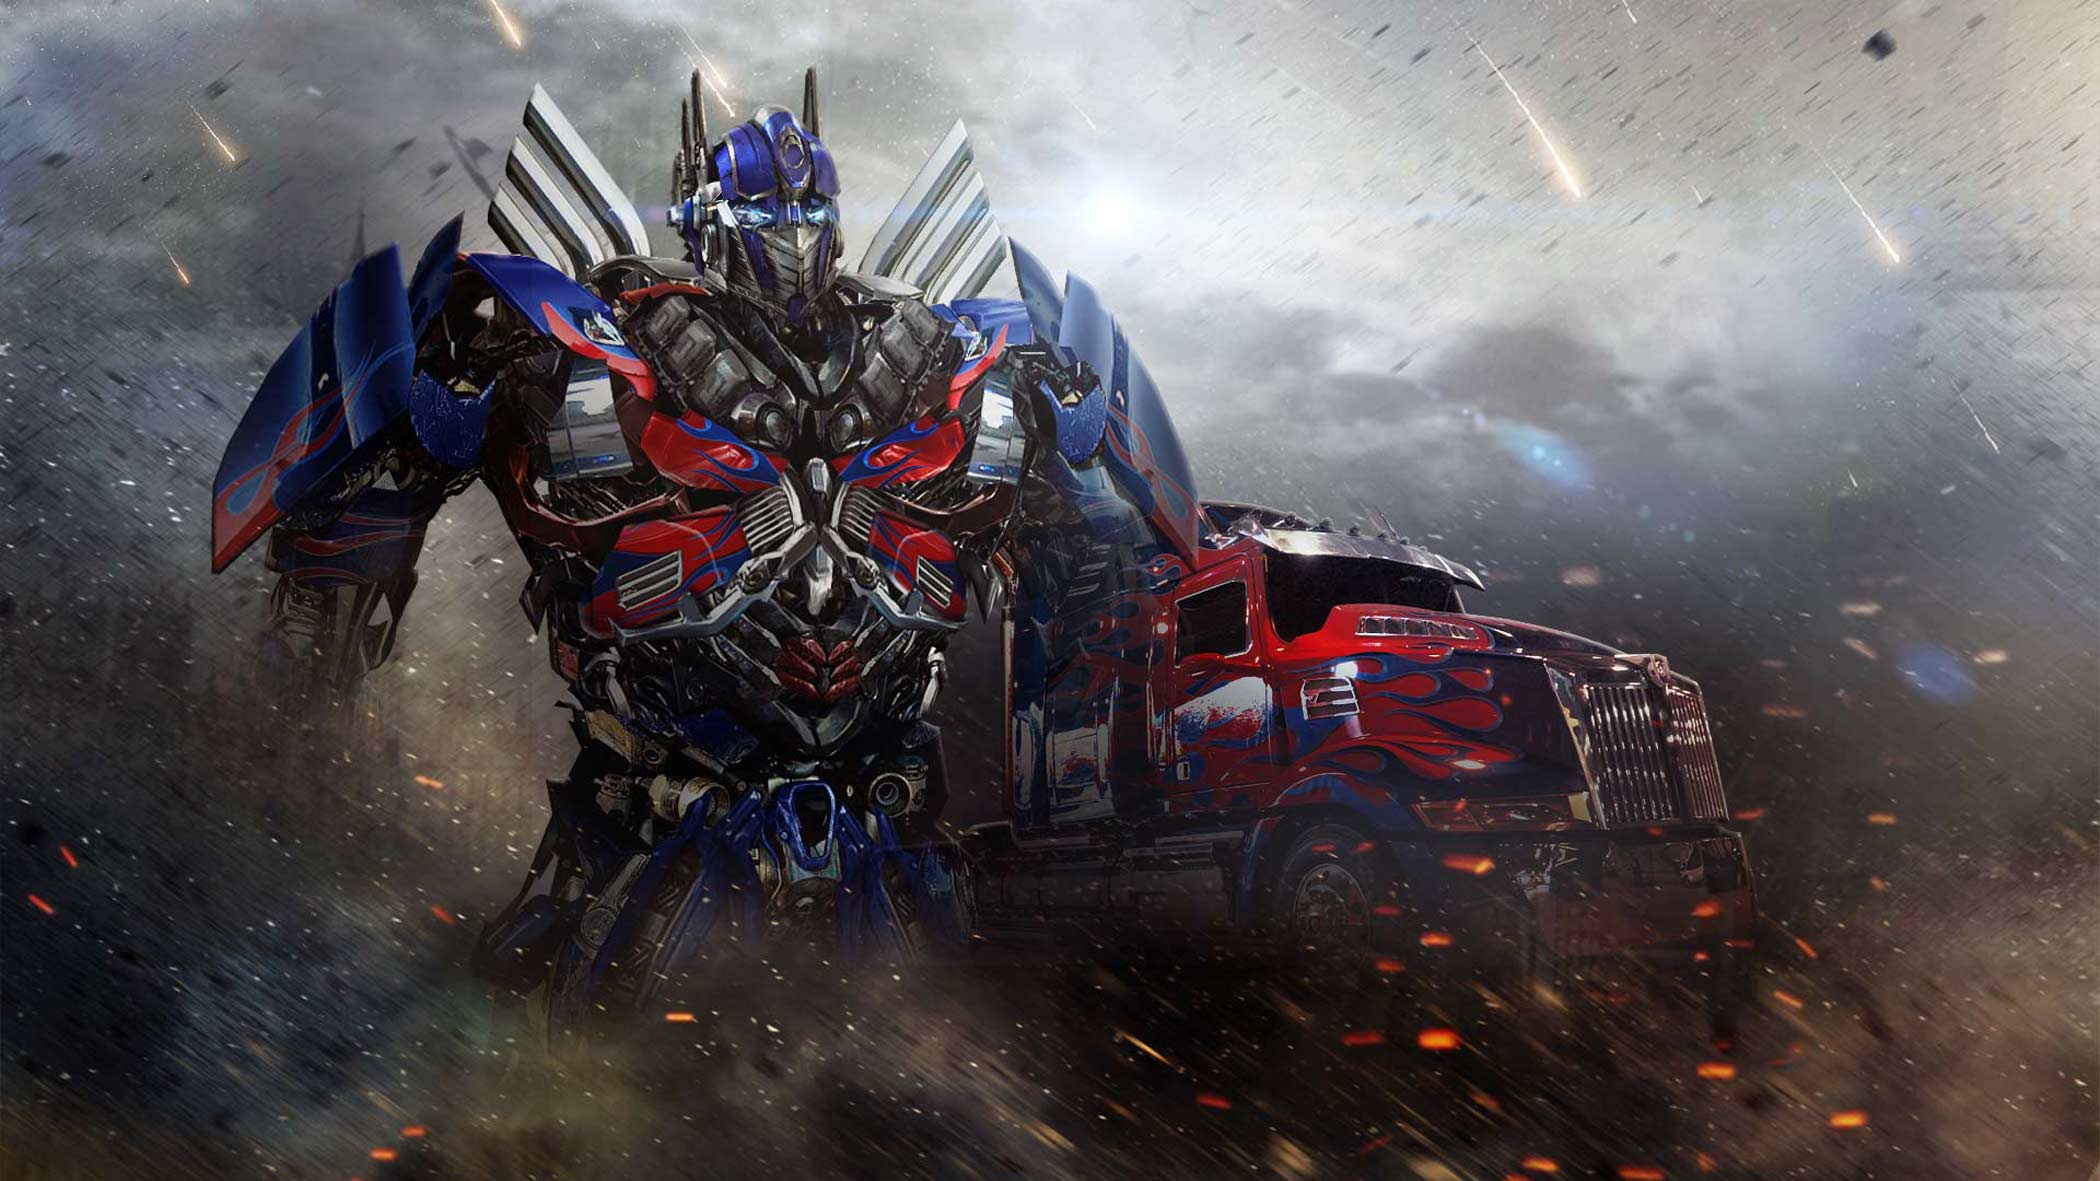 optimus prime wallpaper download - photo #18